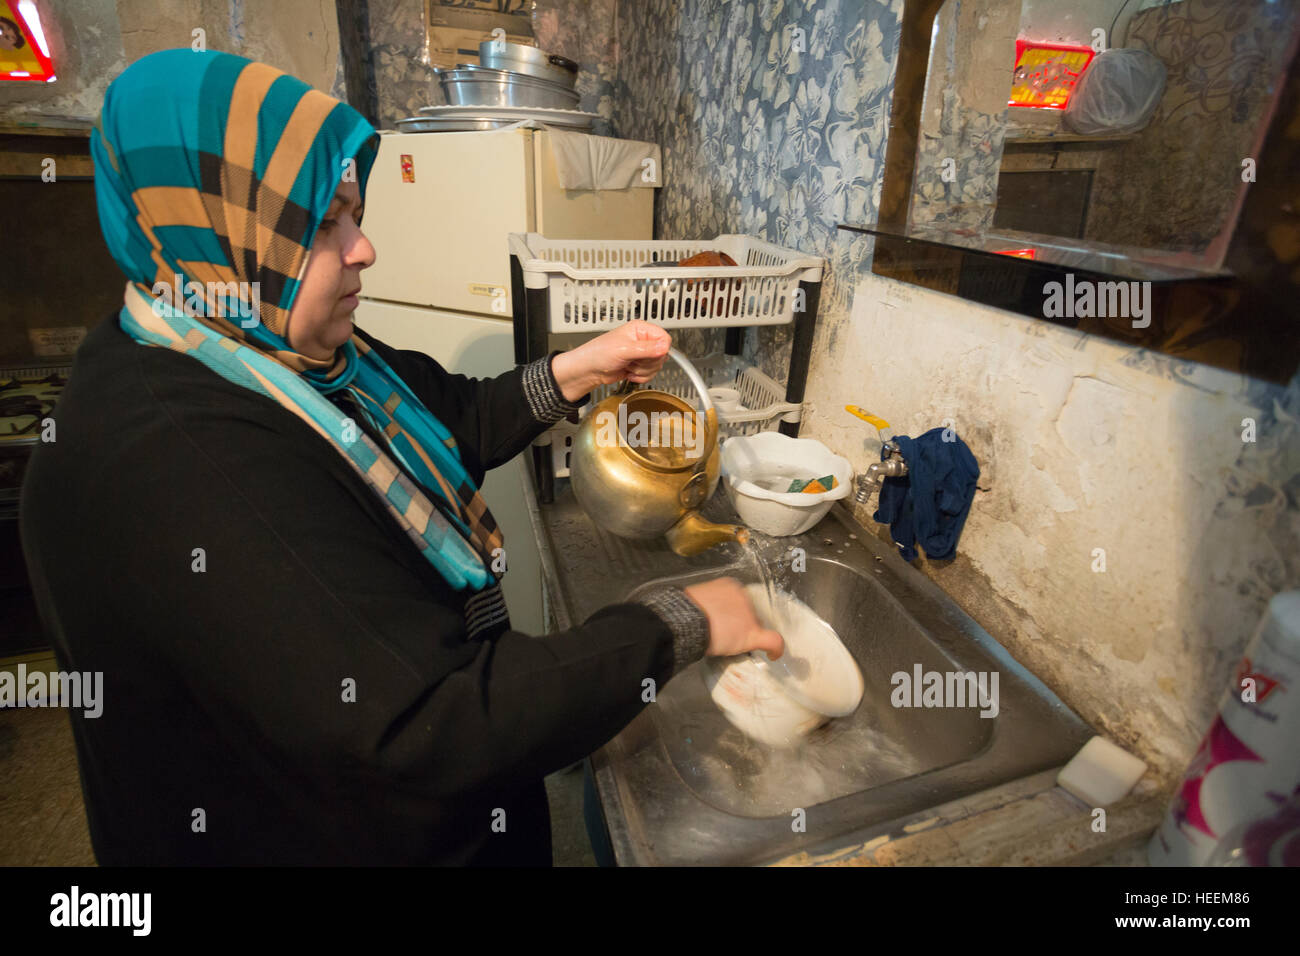 Families struggle to ration drinking water in the city of Zarqa, Jordan. - Stock Image